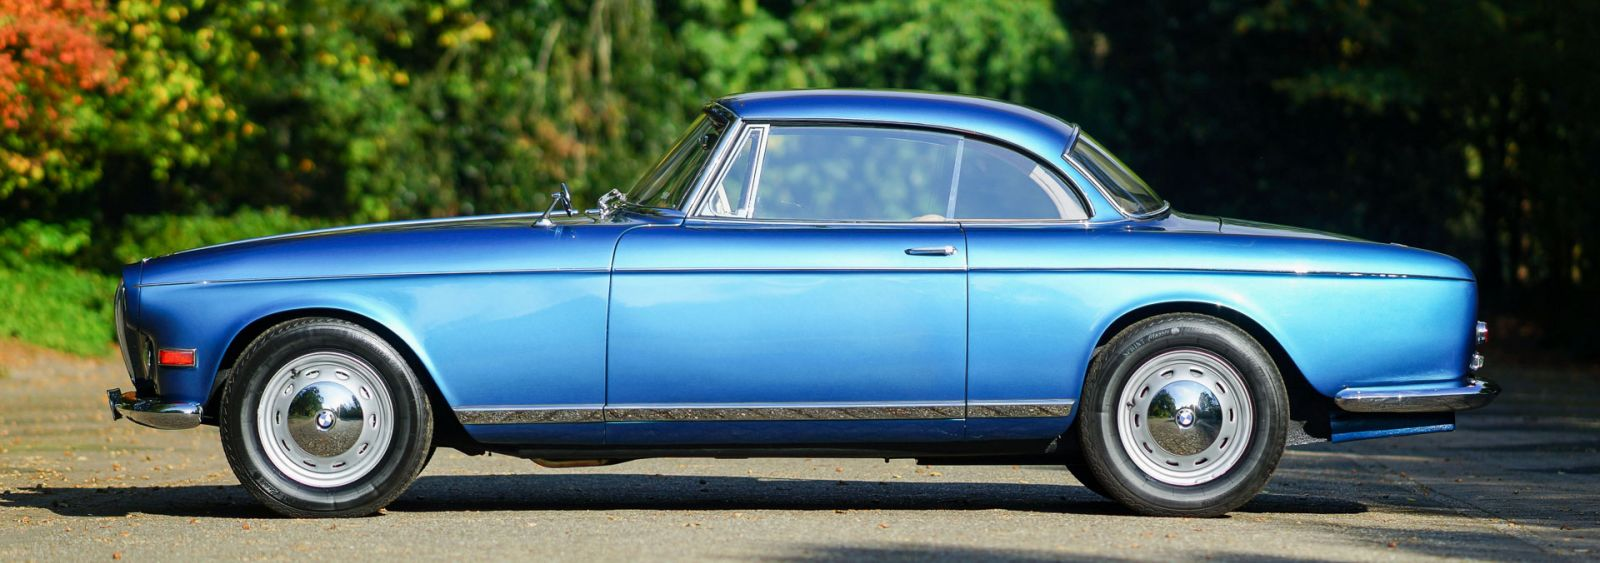 BMW 503 coupe, 1958 - Welcome to ClassiCarGarage